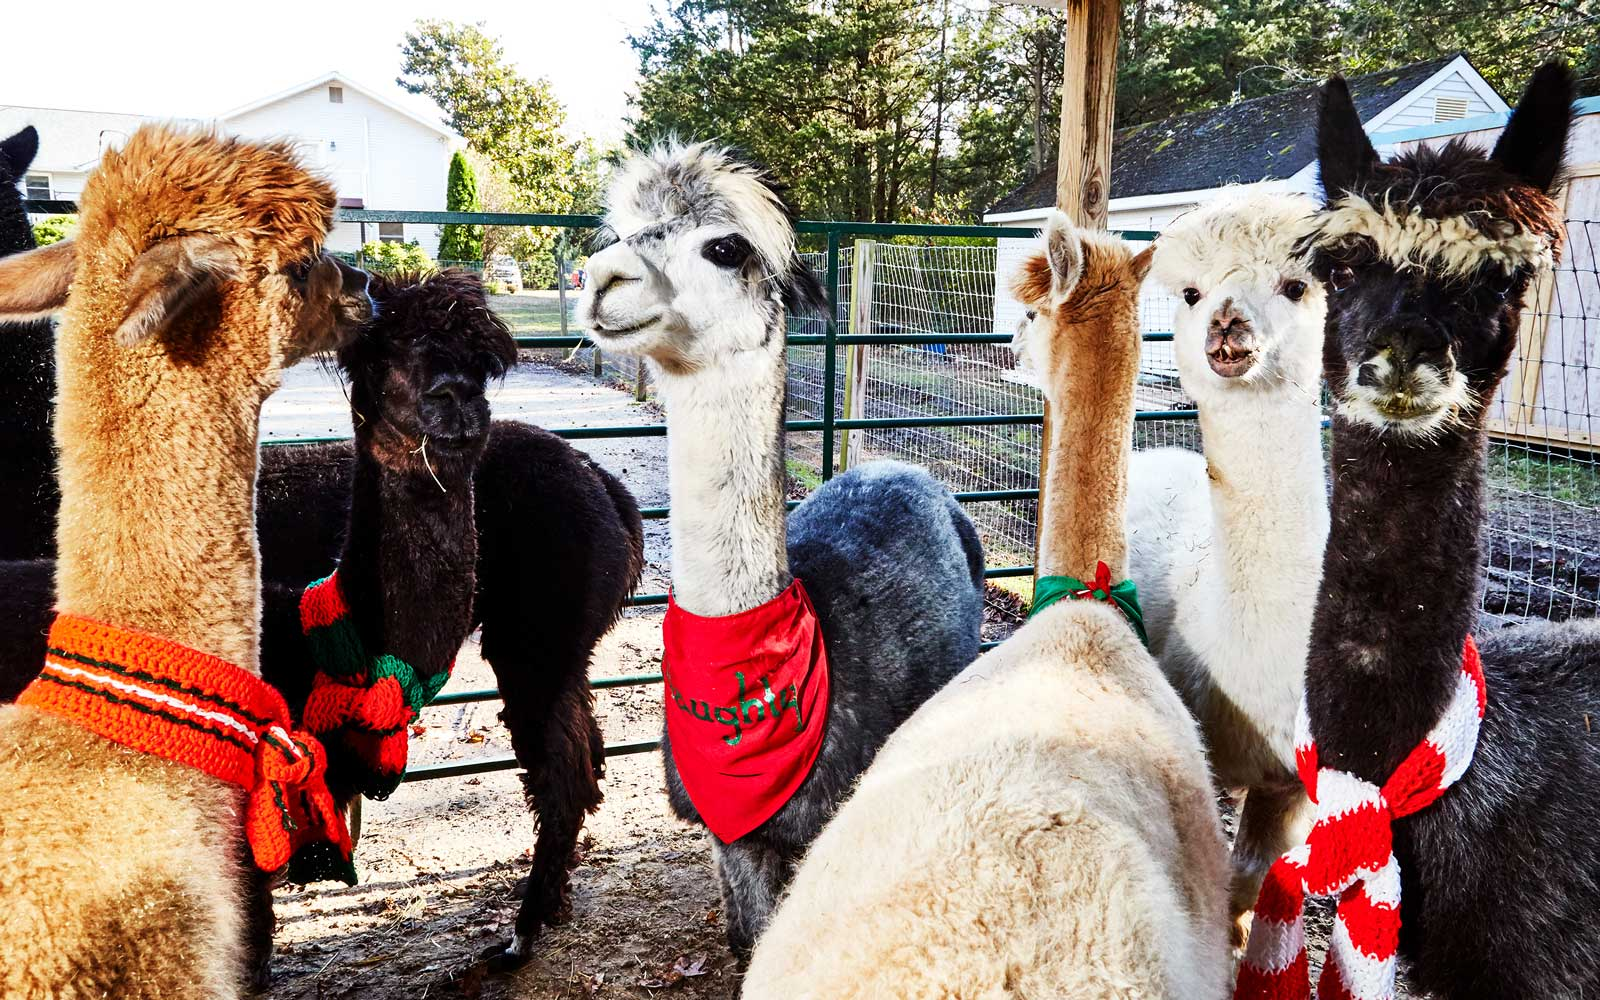 This Jersey Shore Alpaca Farm Has More Christmas Spirit Than the North Pole — and You Can Visit